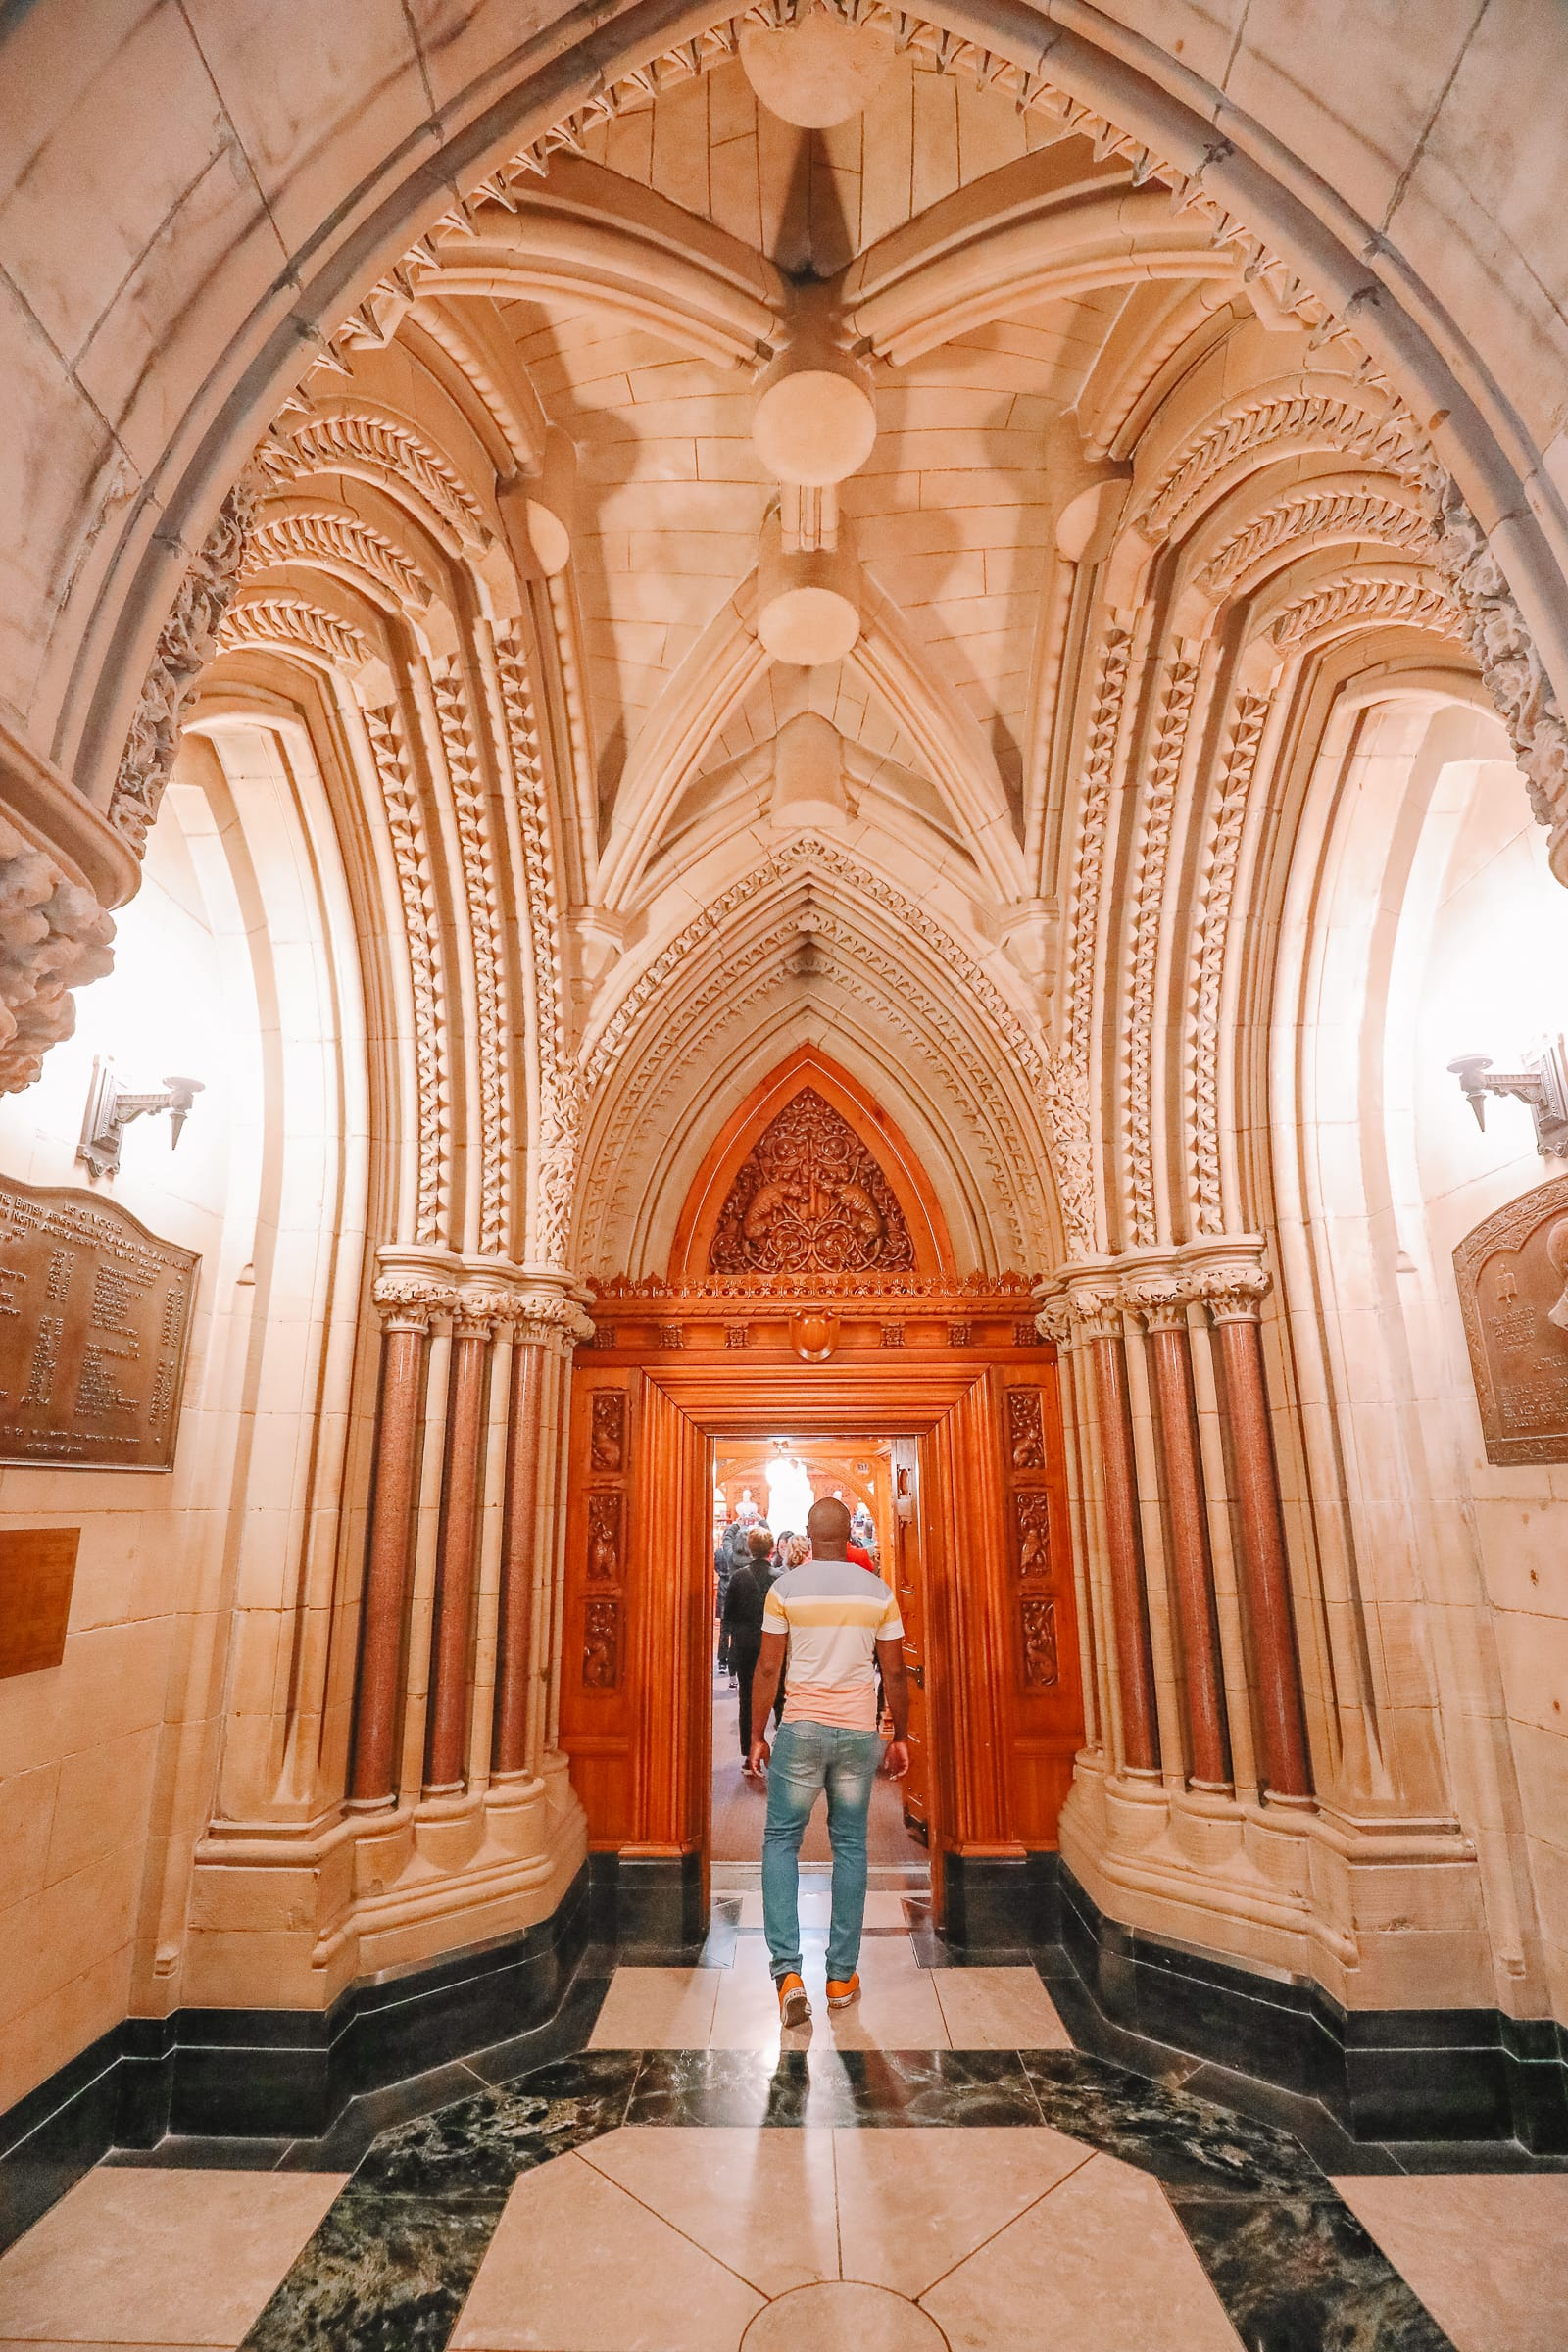 Visiting The Parliament Of Canada (22)